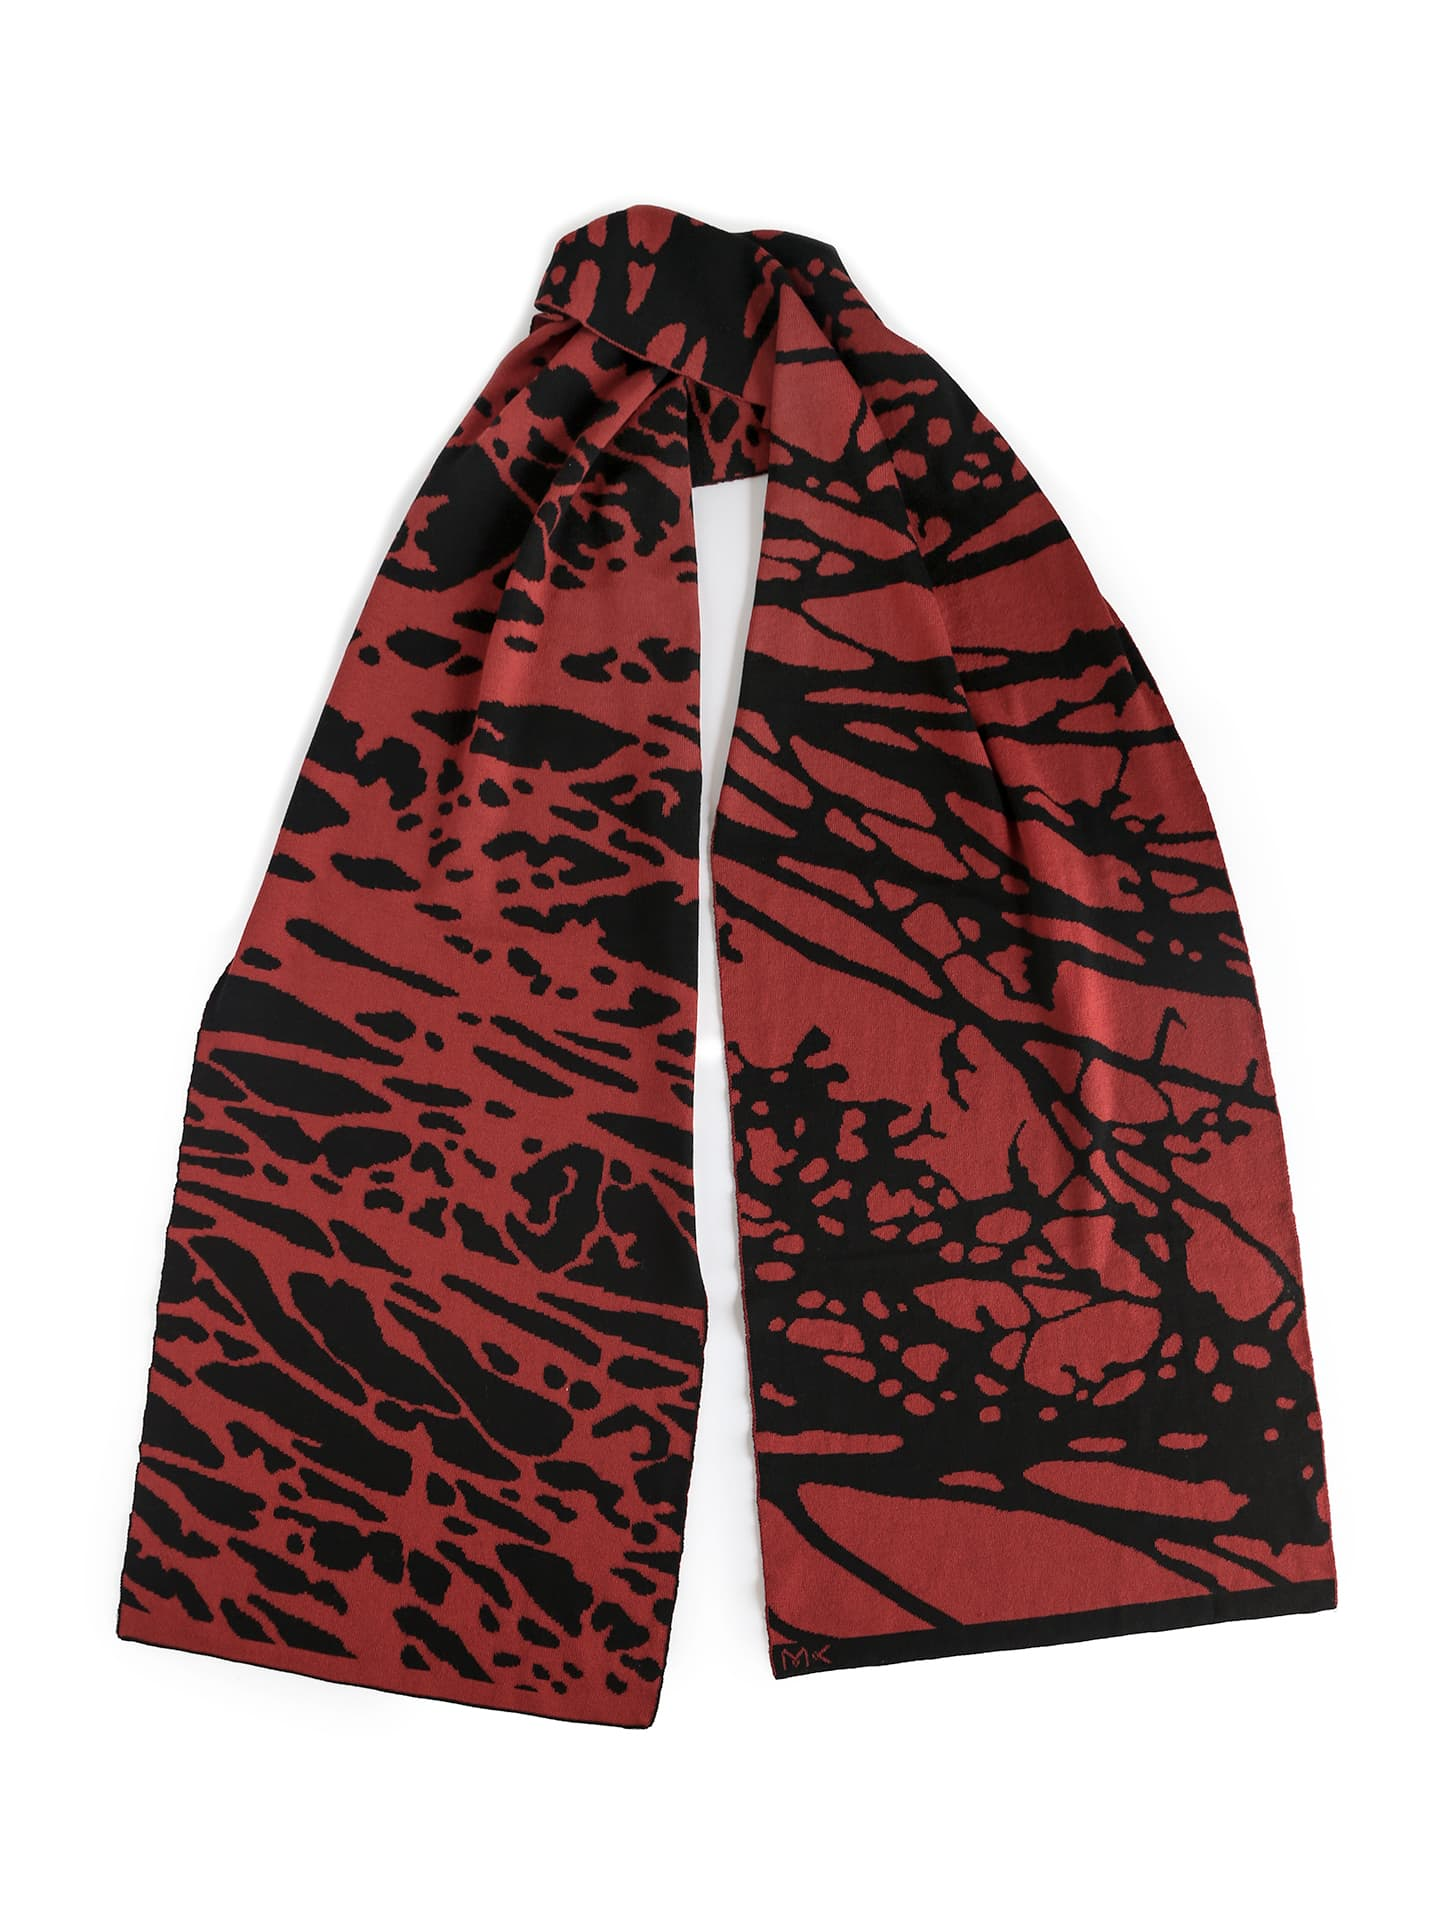 Painted Tree Scarf - Copper & Black